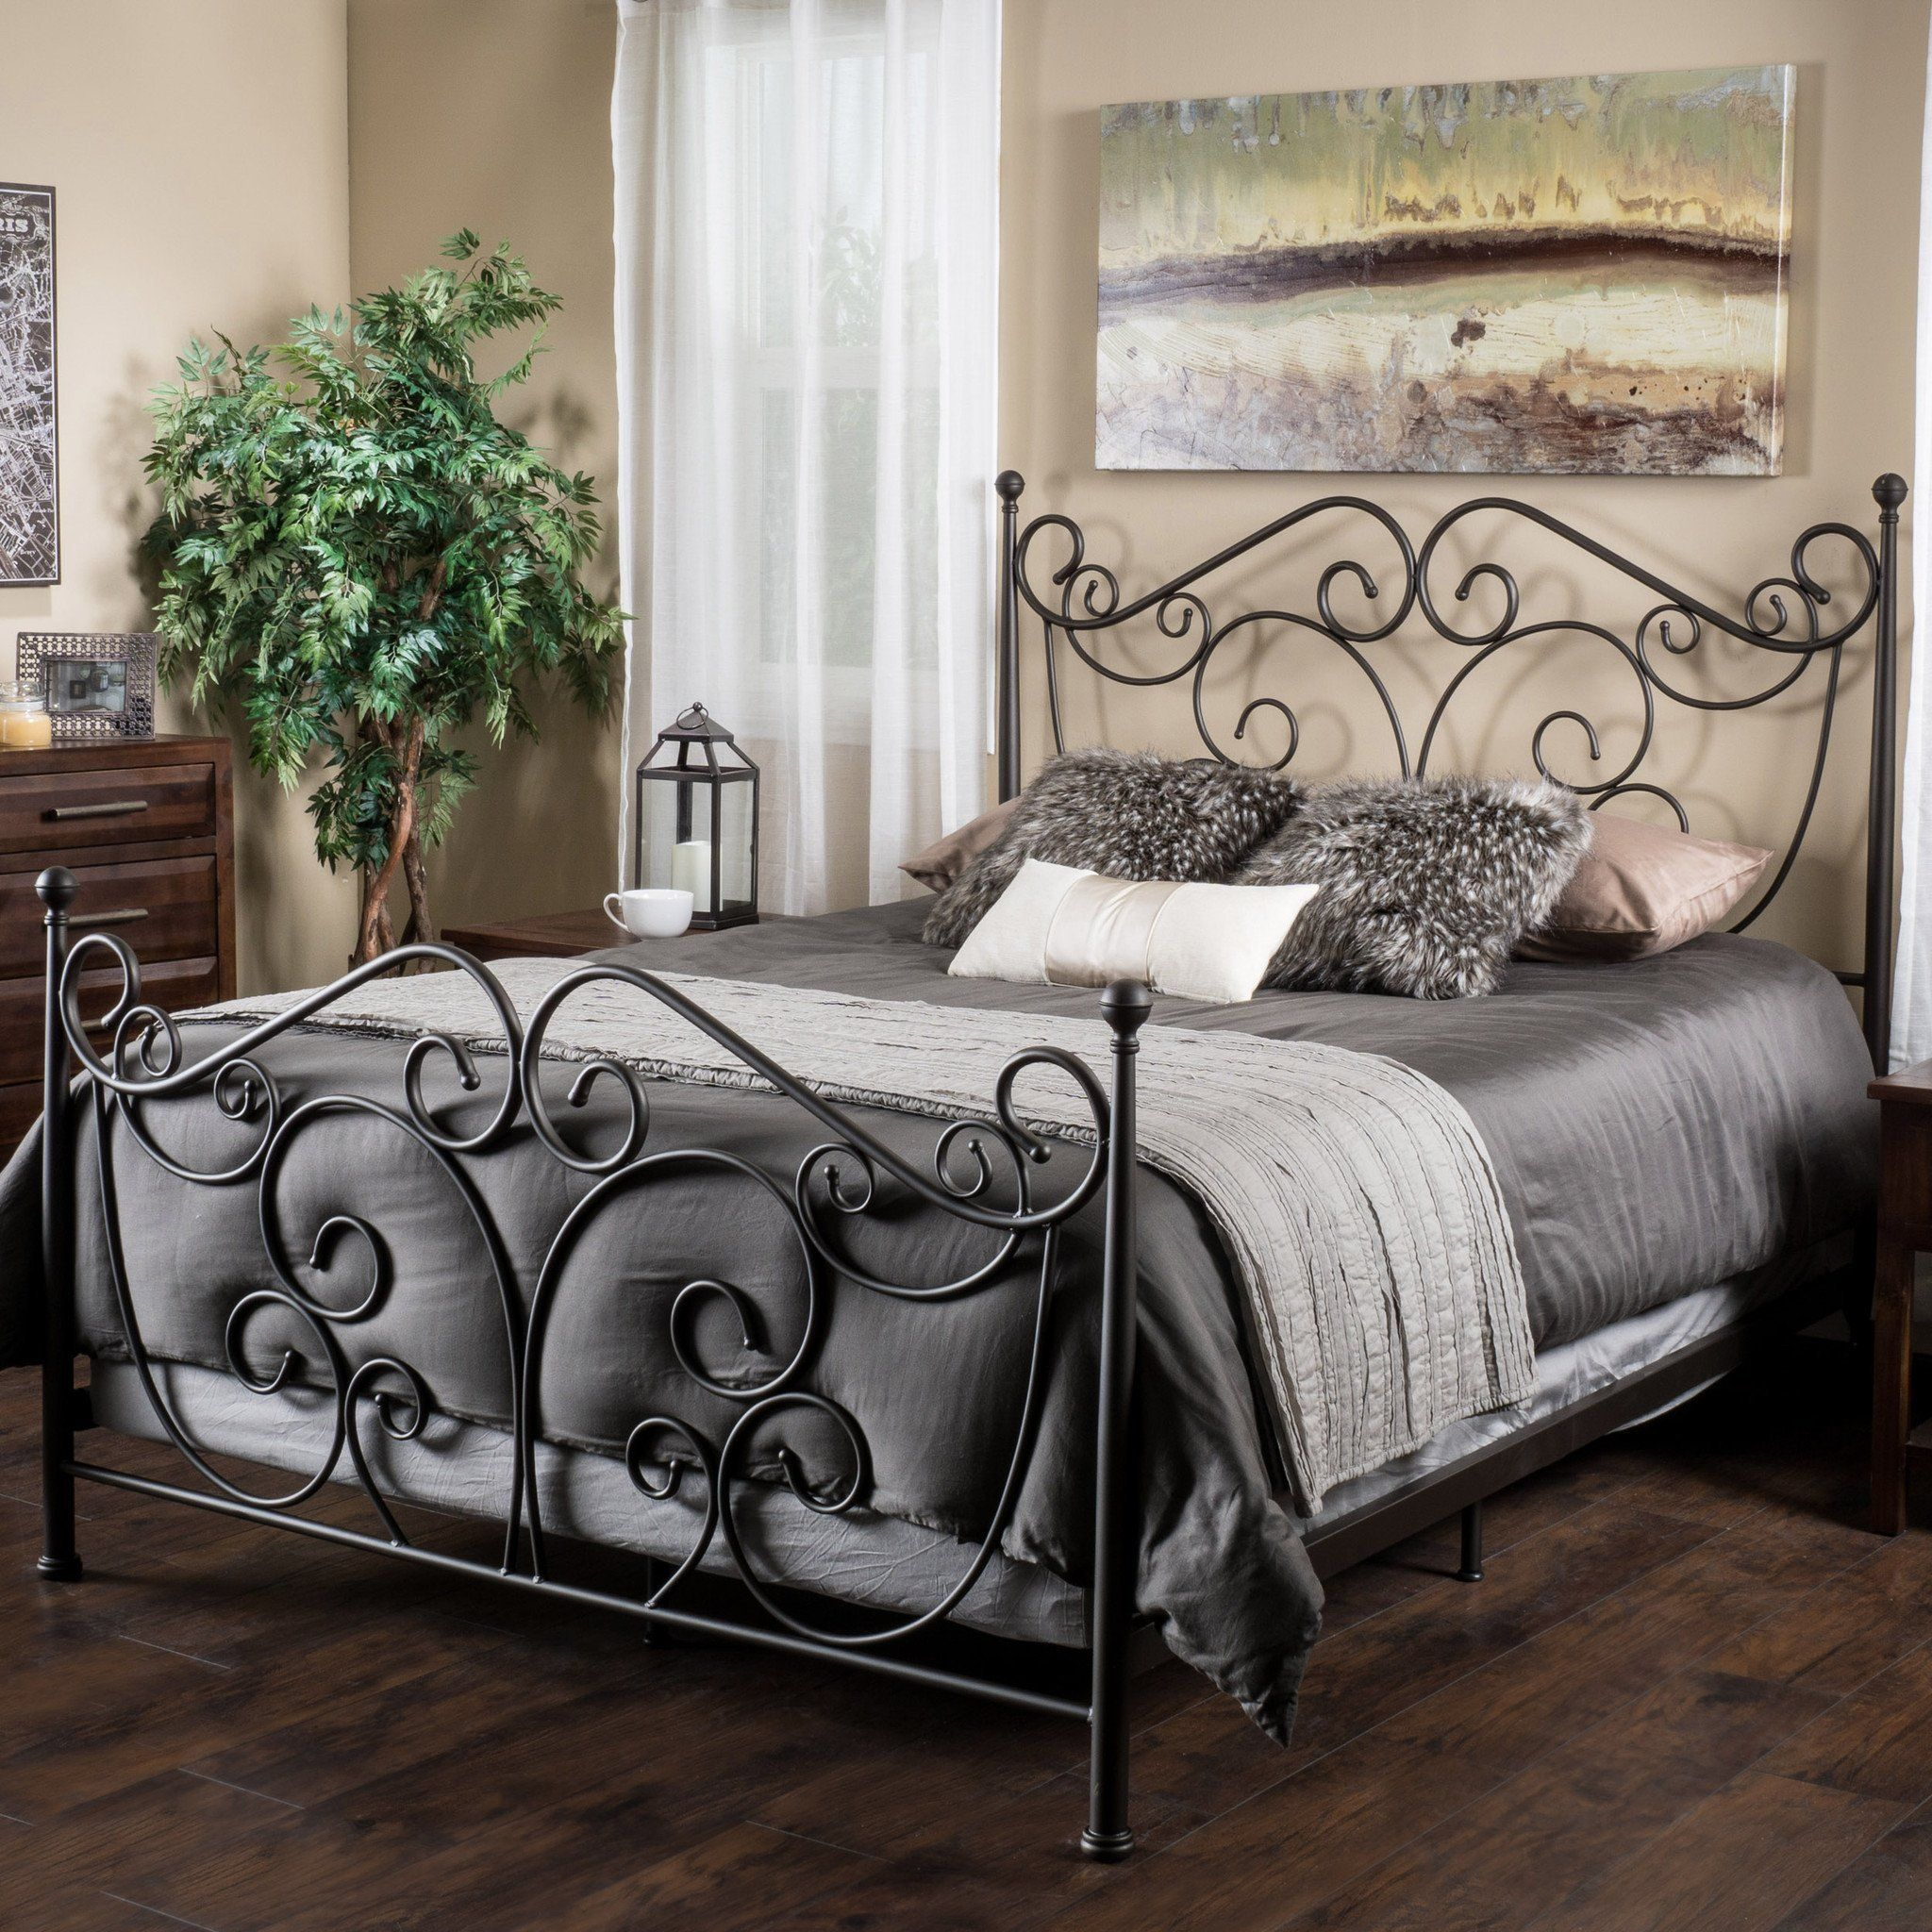 cane astounding wood king rails grey cheap headboards mattress head iron bed pictures frame bookshelves size of gallery headboard bedroom images and built white full retro frames with mahogany queen for tall beds beautiful metal wrought storage in footboard upholstered brown